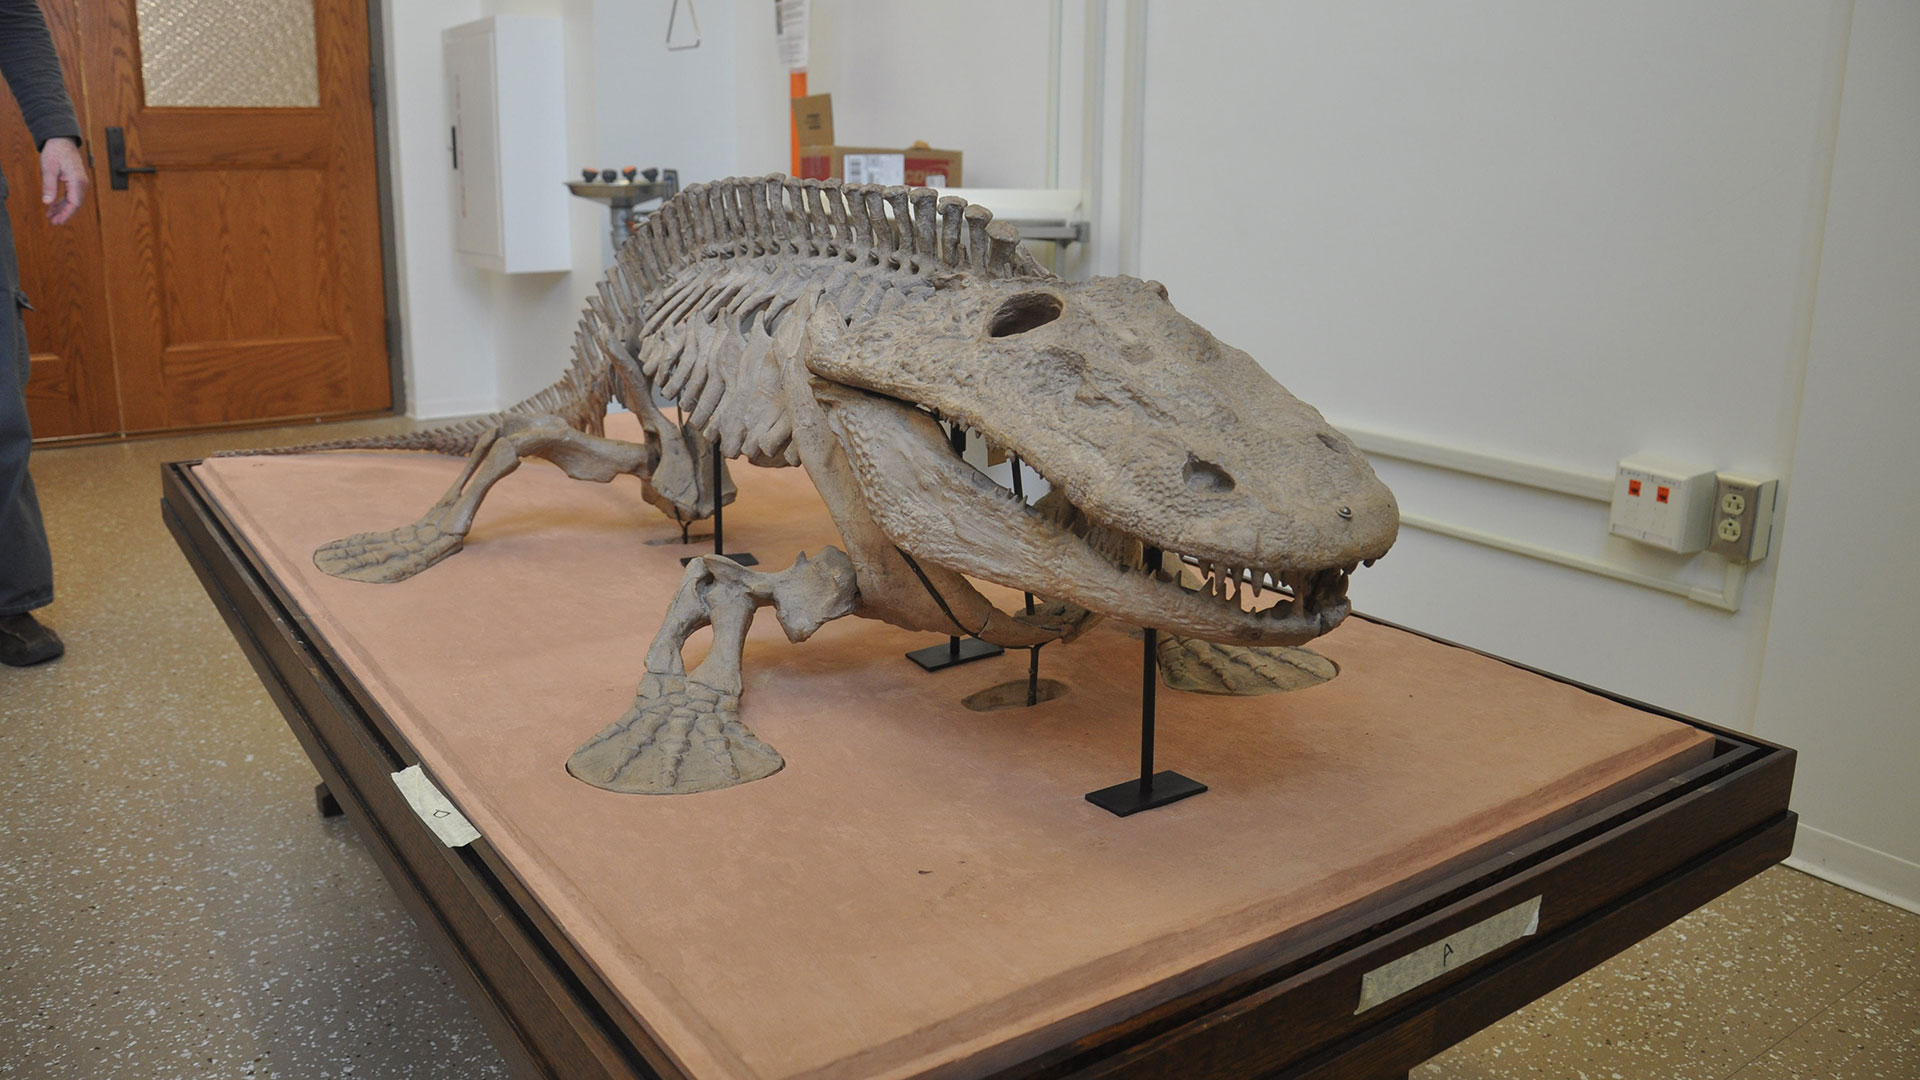 6-8 feet long prehistoric reptile-looking plaster cast mounted to a stand